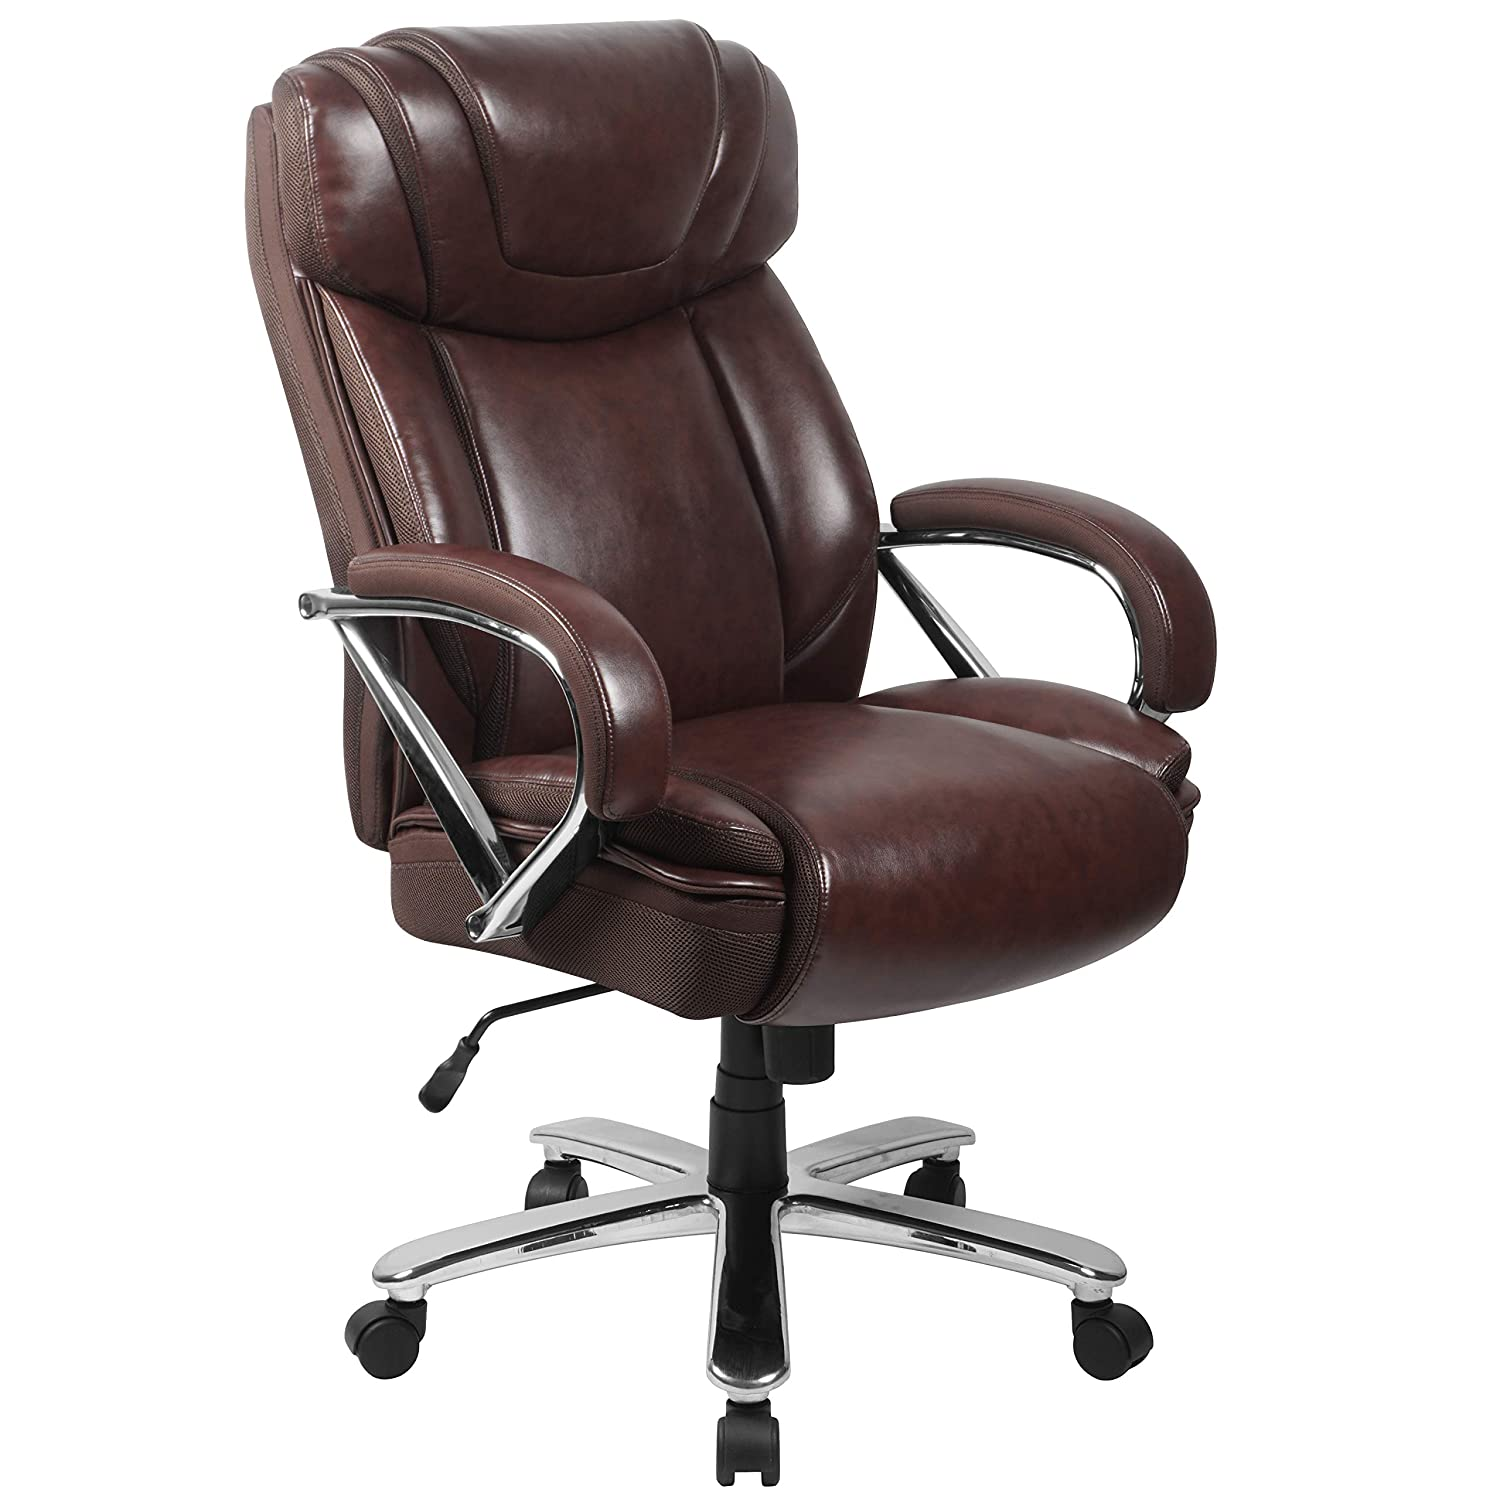 Flash Furniture HERCULES Series Big & Tall 500 lb. Rated Brown Leather Executive Swivel Ergonomic Office Chair with Extra Wide Seat